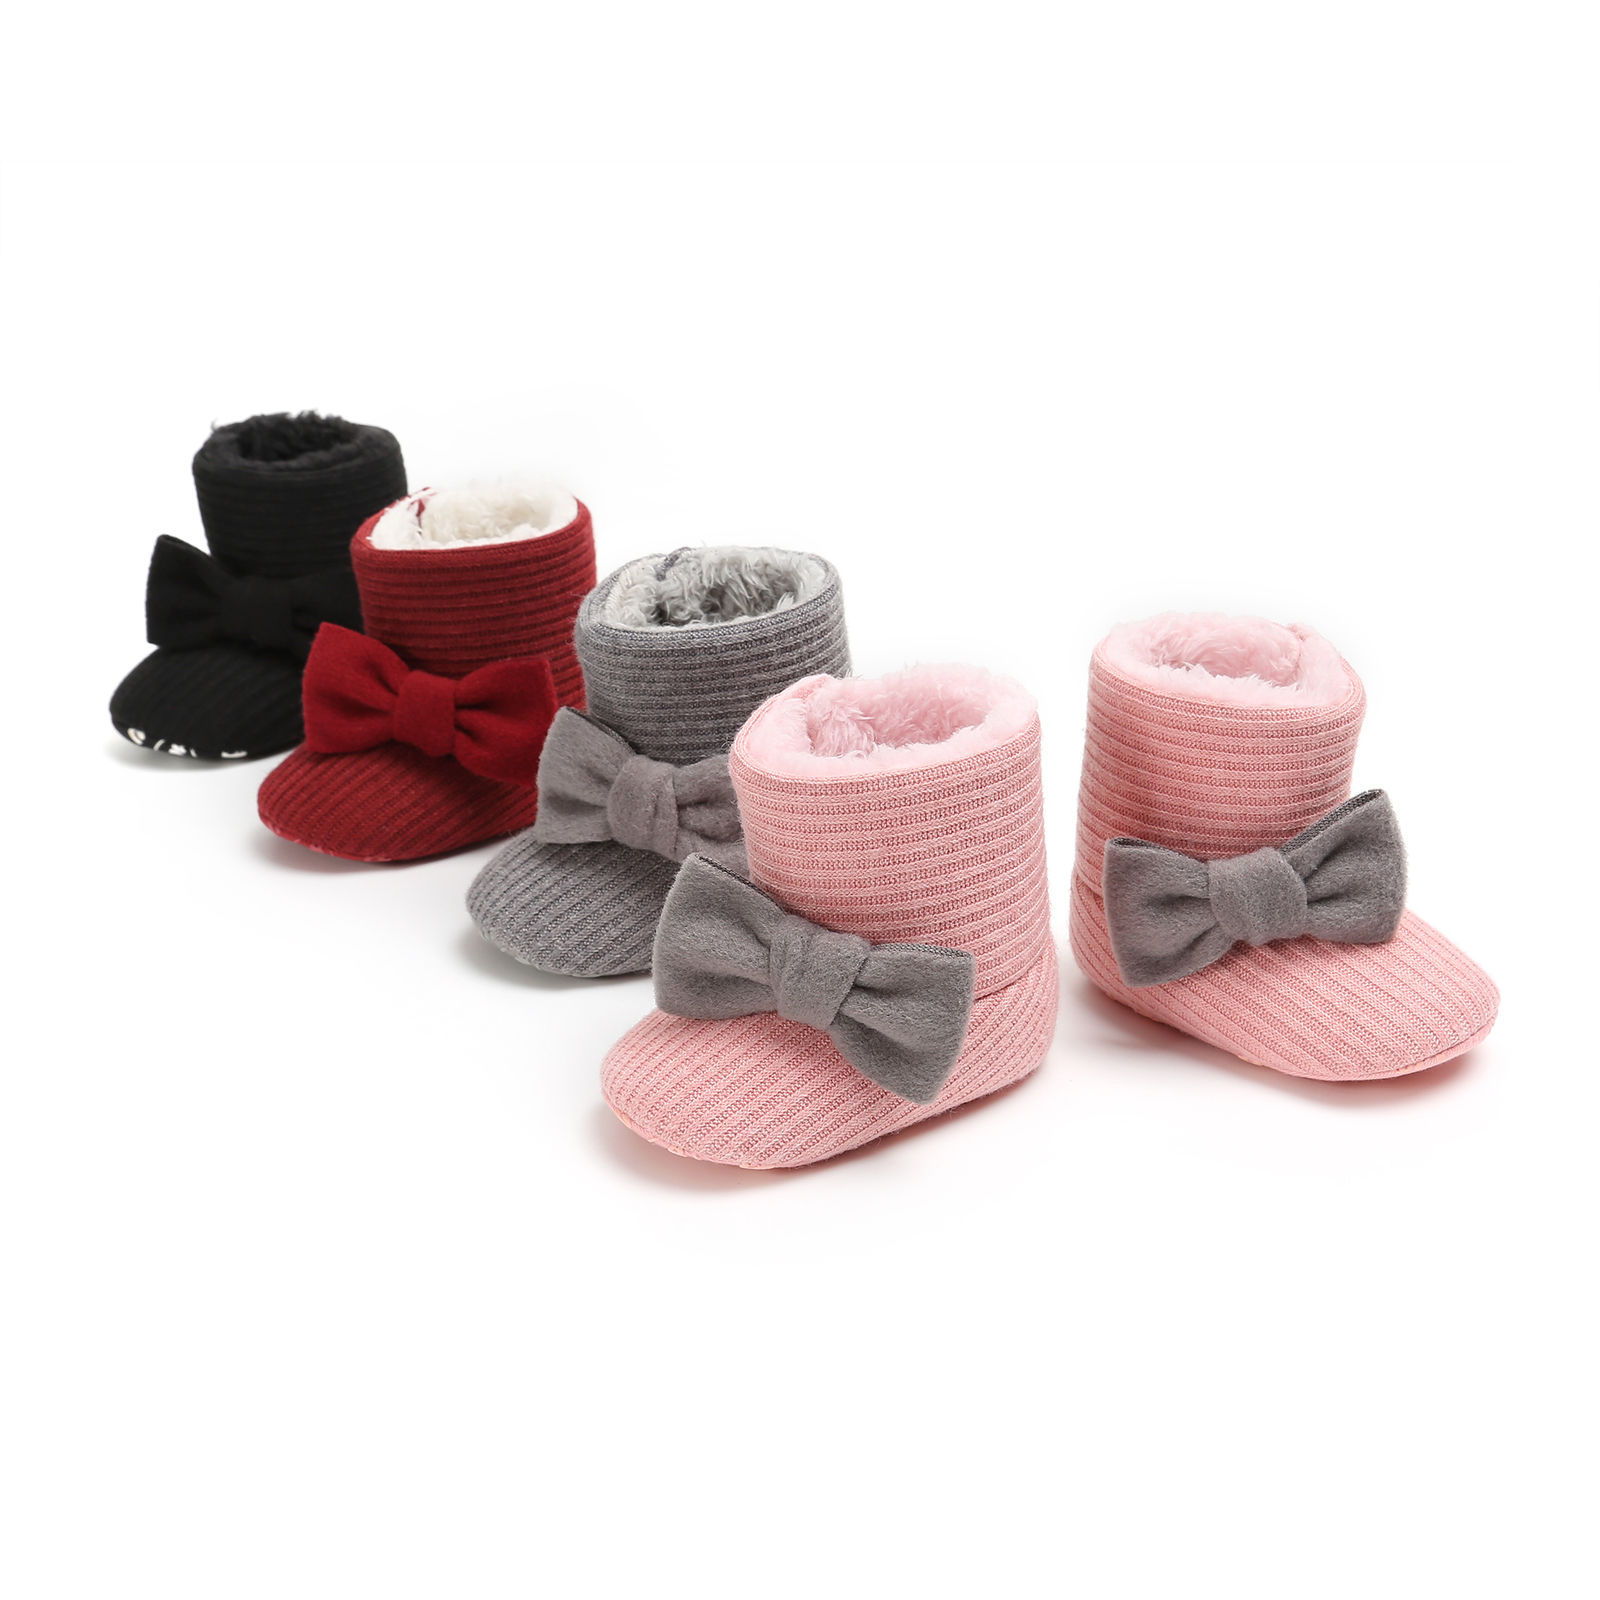 Winter Toddler Baby Boy Girl Warm Snow Boots Infant Soft Sole Slipper Crib Bowknot Snowboot Baby Shoes For 0-18M